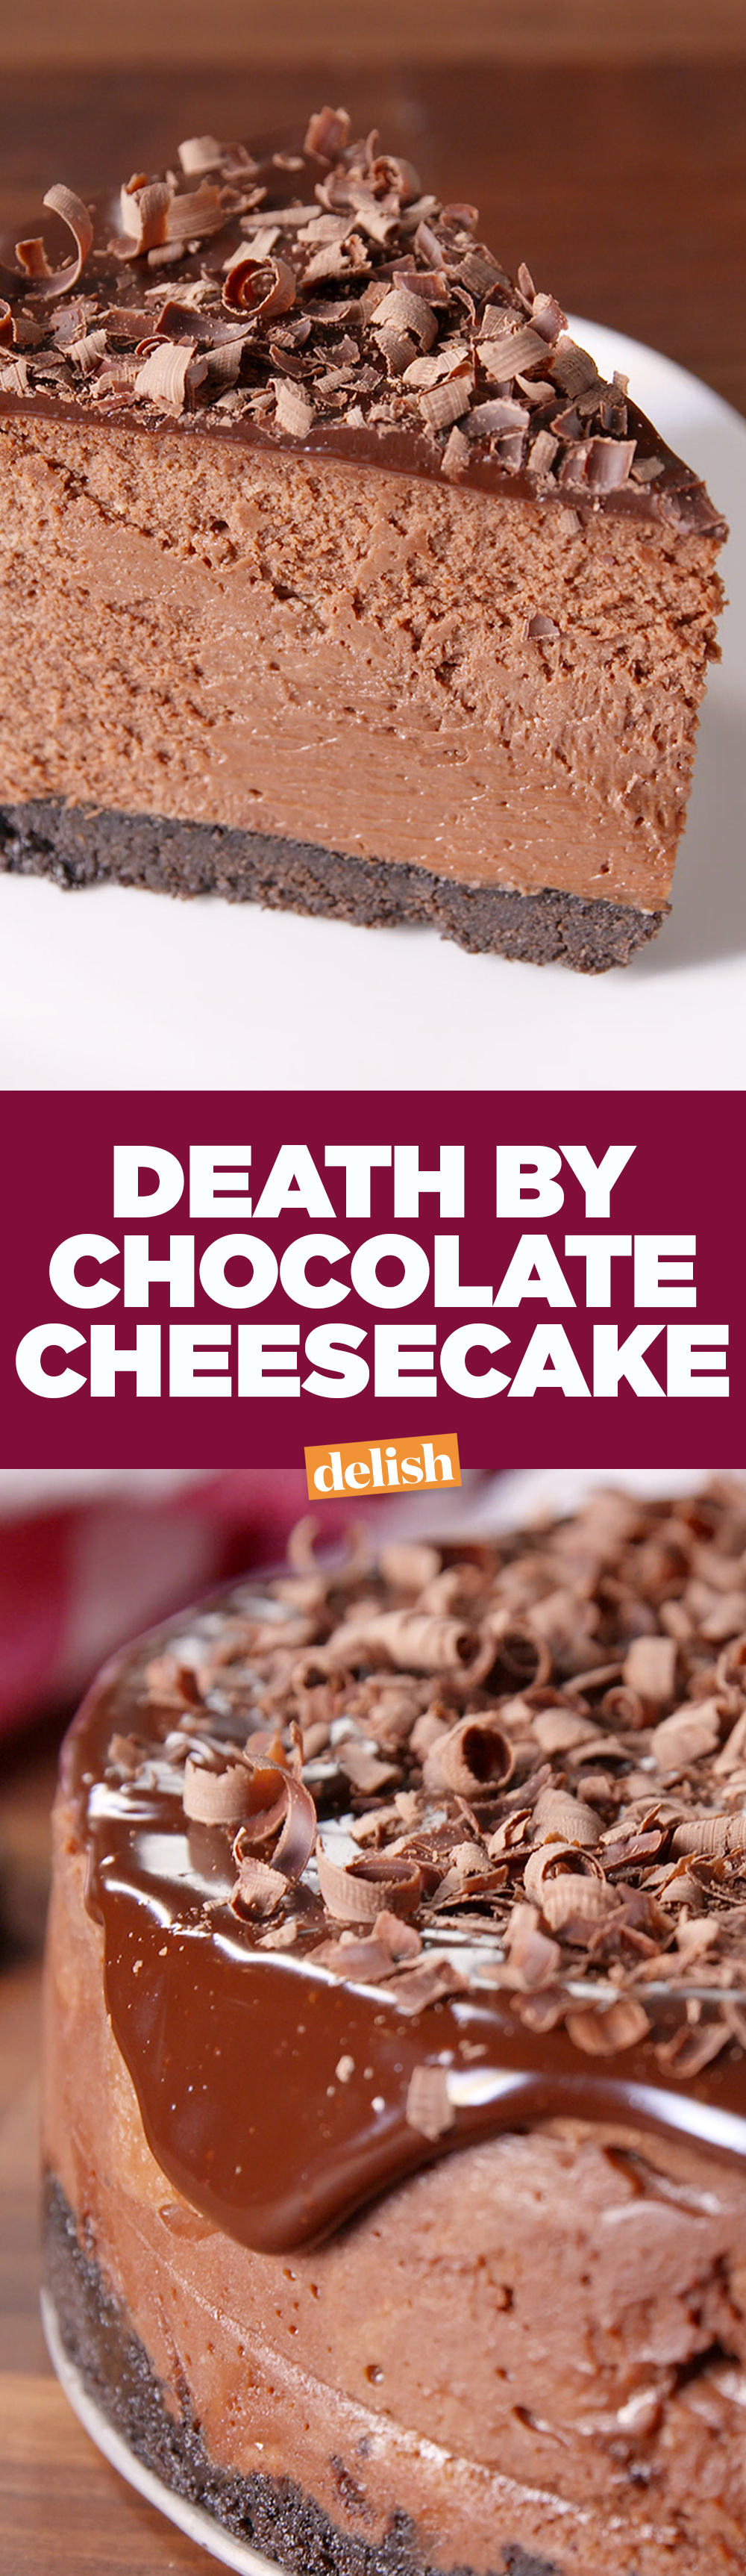 Death-By-Chocolate-Cheesecake-will-be-the-star-of-every-party-Get-the-recipe-on-Delish-com-wallpaper-wpc9004104